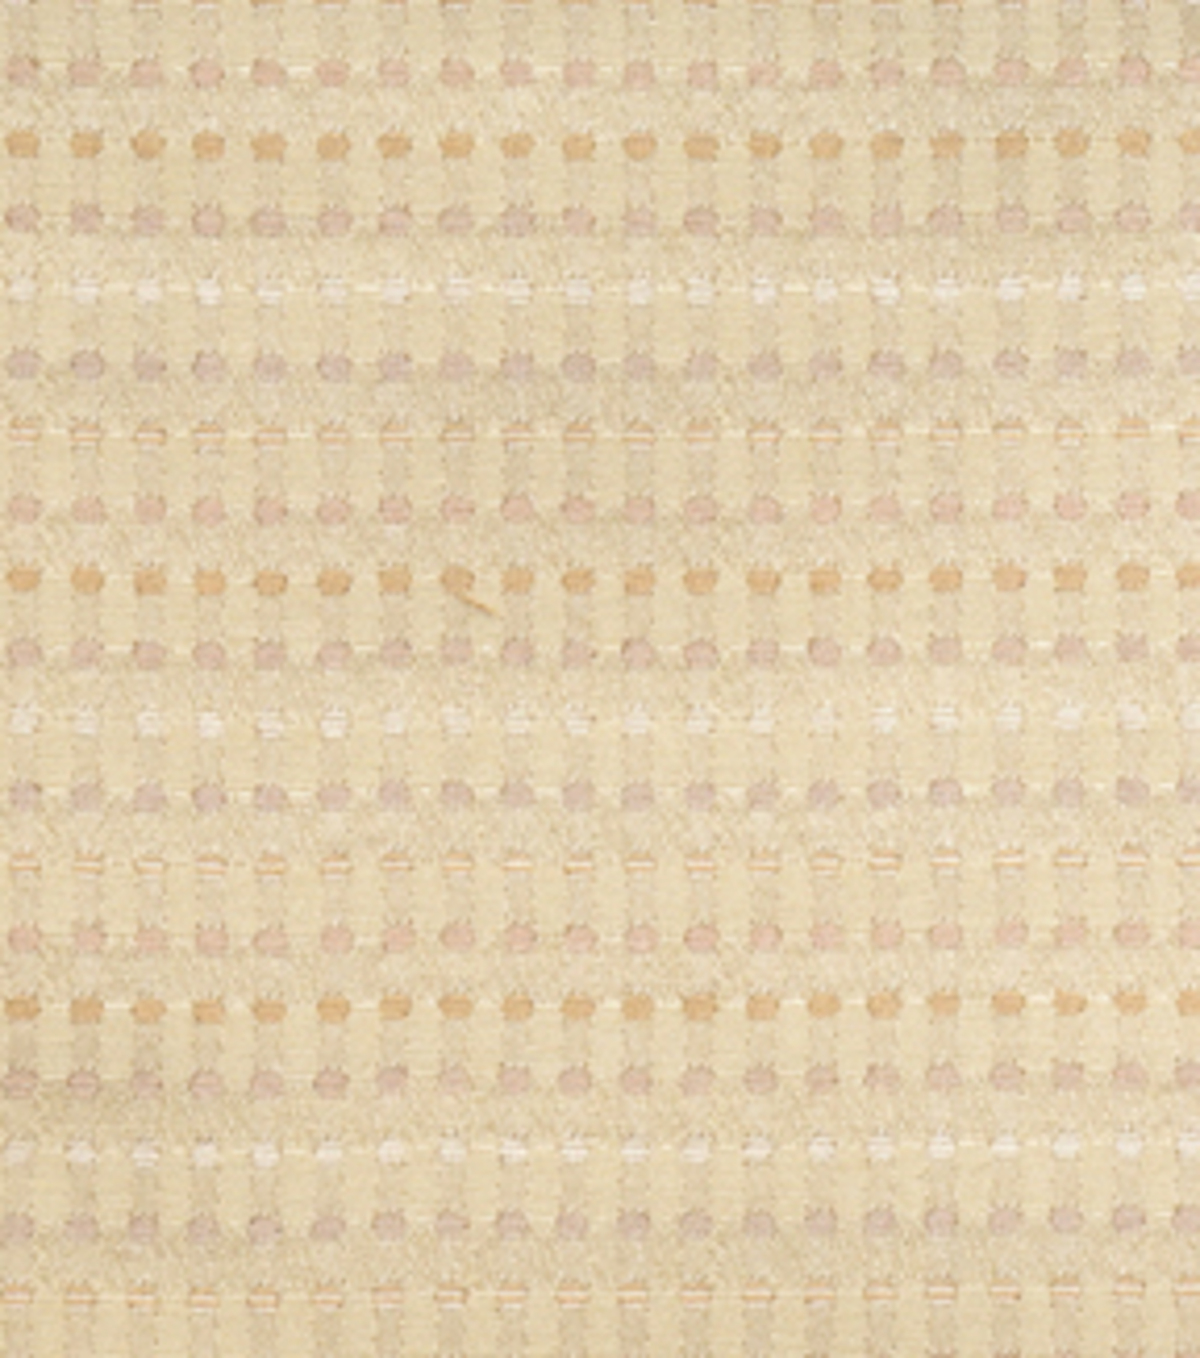 Home Decor 8\u0022x8\u0022 Fabric Swatch-Upholstery Fabric Eaton Square Elk Alabaster